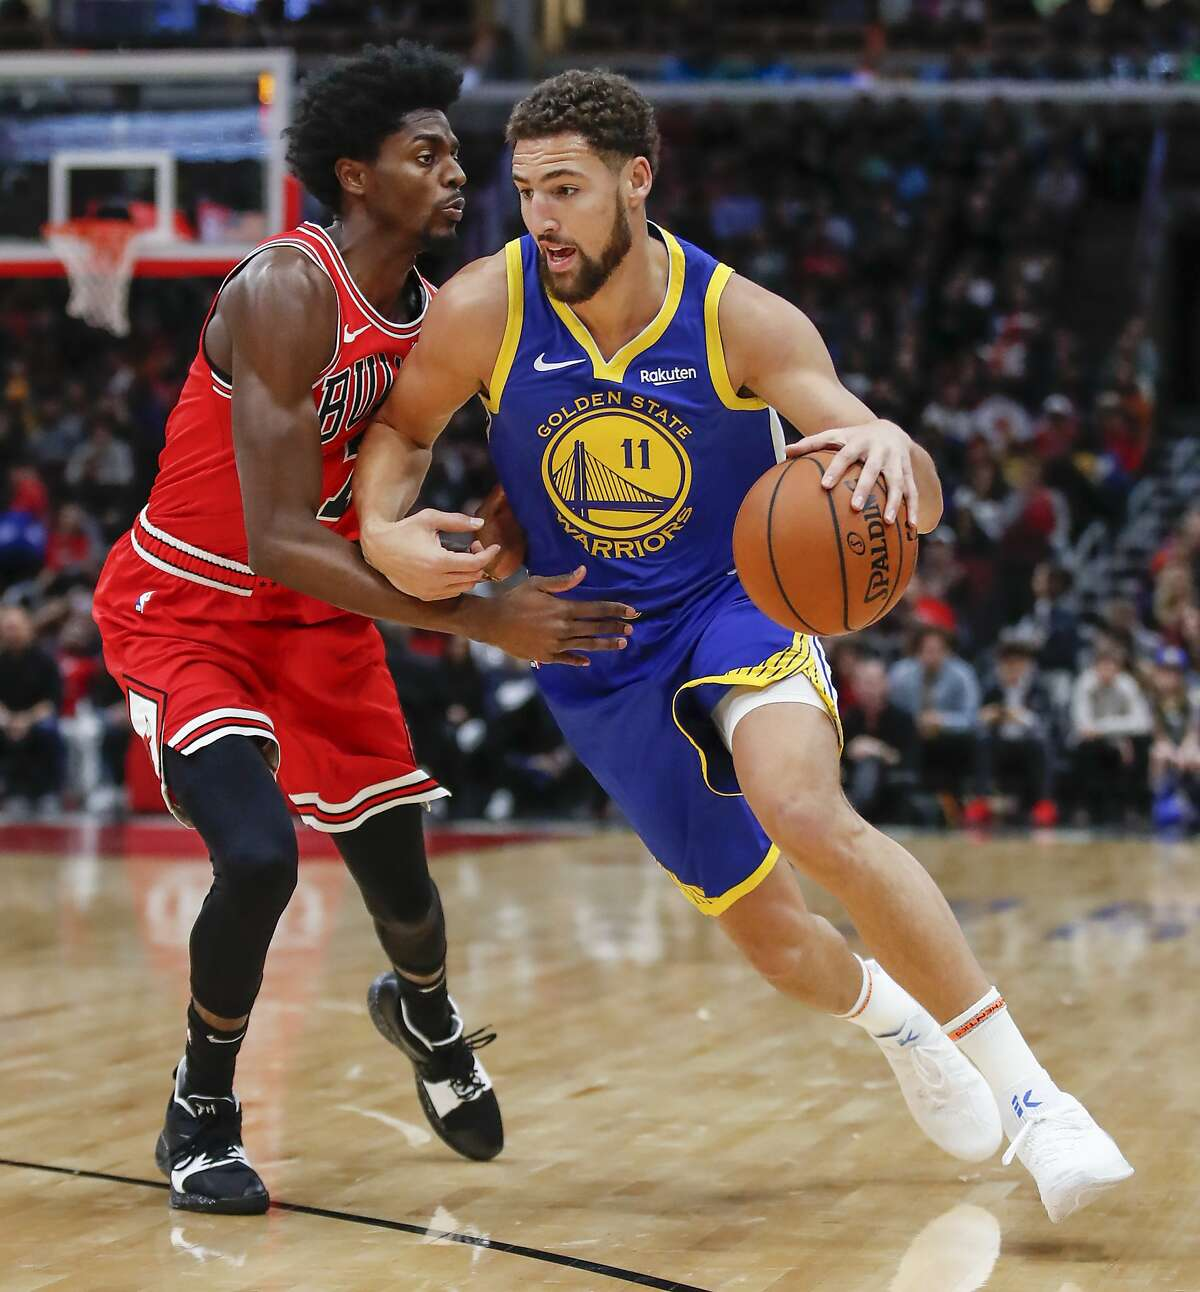 Golden State Warriors guard Klay Thompson, right, drives to the basket against Chicago Bulls forward Justin Holiday, left, during the first half of an NBA basketball game, Monday, Oct. 29, 2018, in Chicago. (AP Photo/Kamil Krzaczynski)